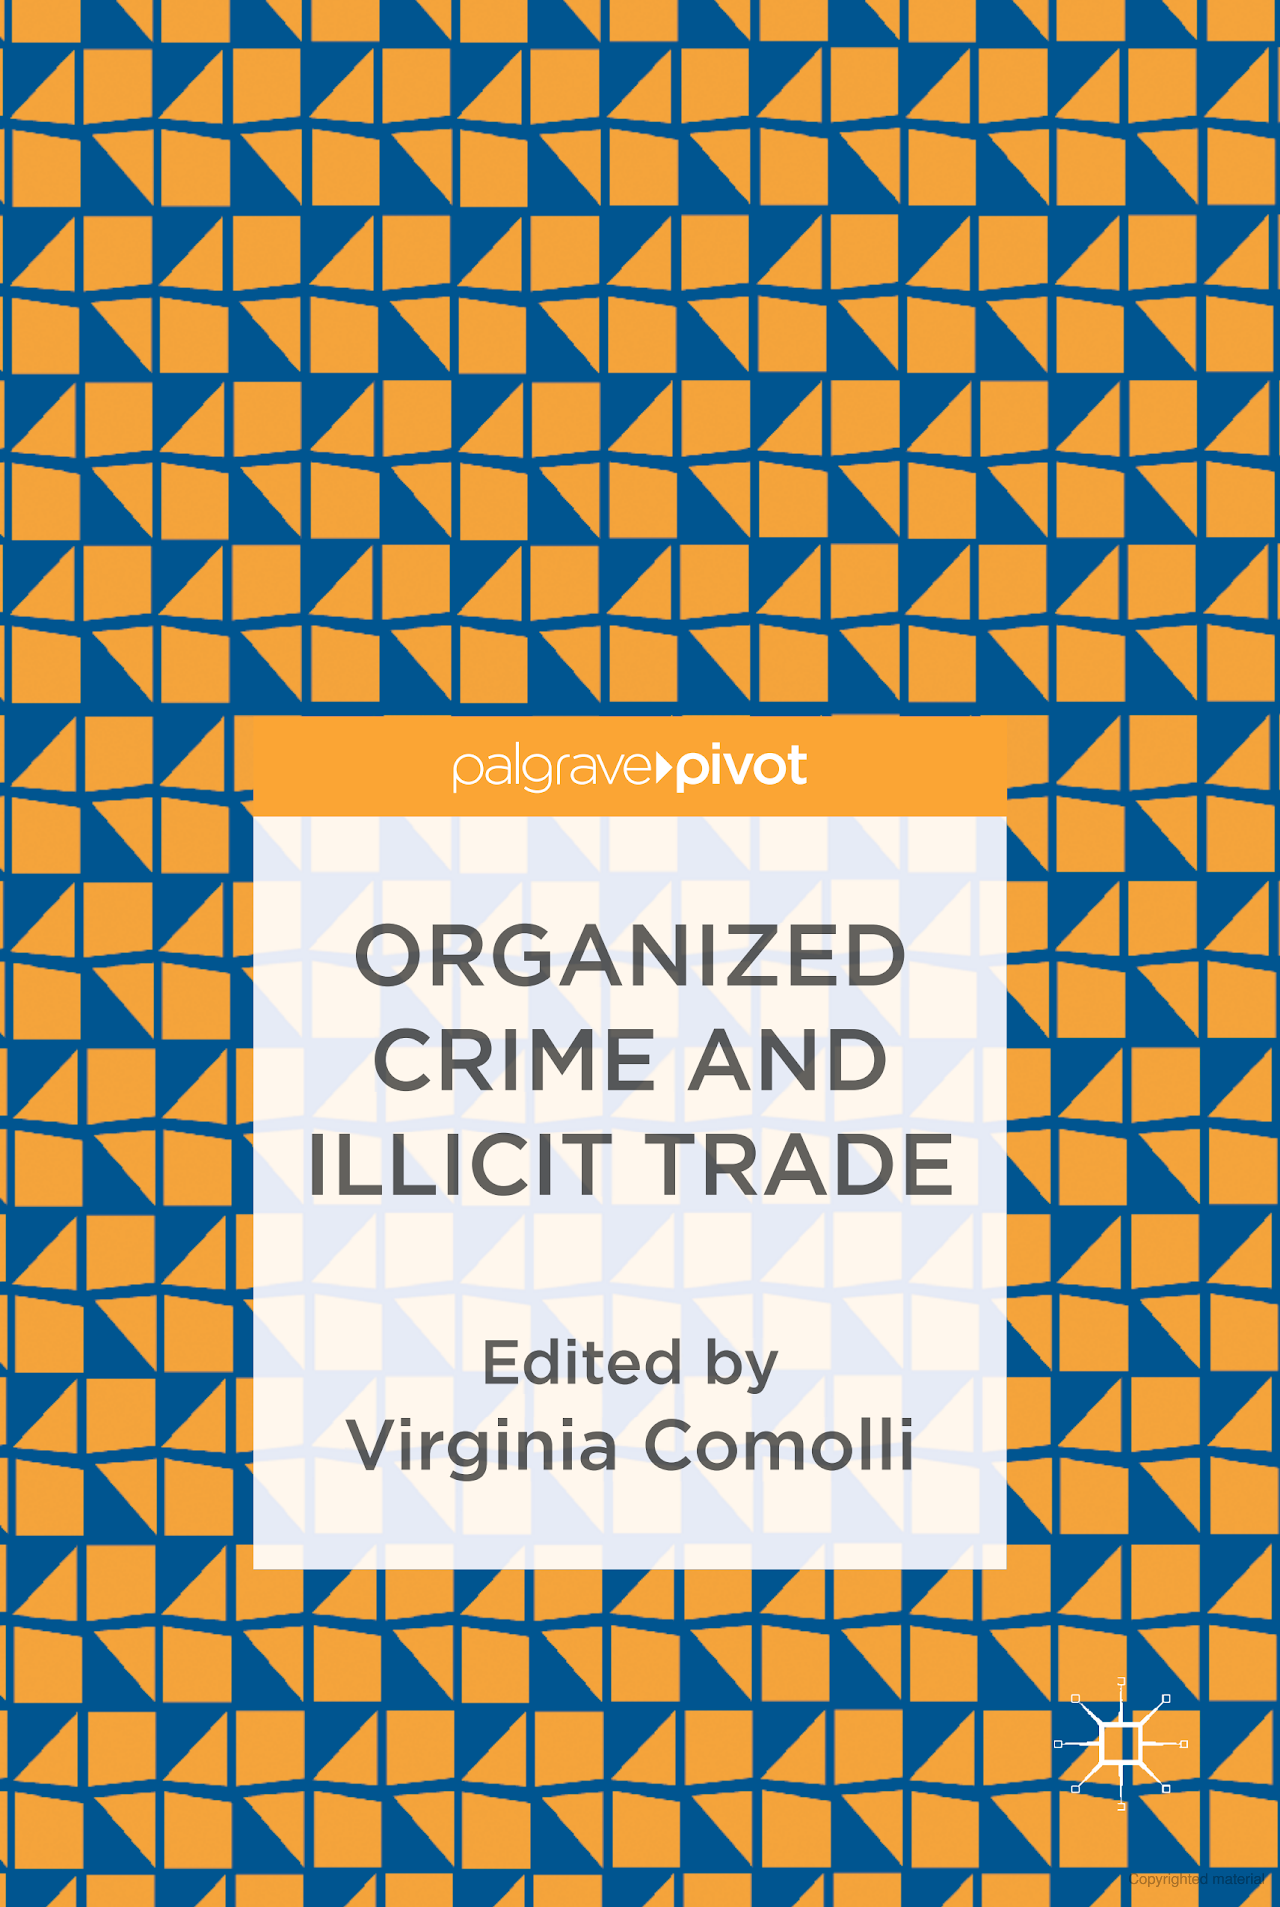 """""""Organized Crime and Illicit Trade: How to Respond to This Strategic Challenge in Old and New Domains"""" edited by Virginia Comolli"""